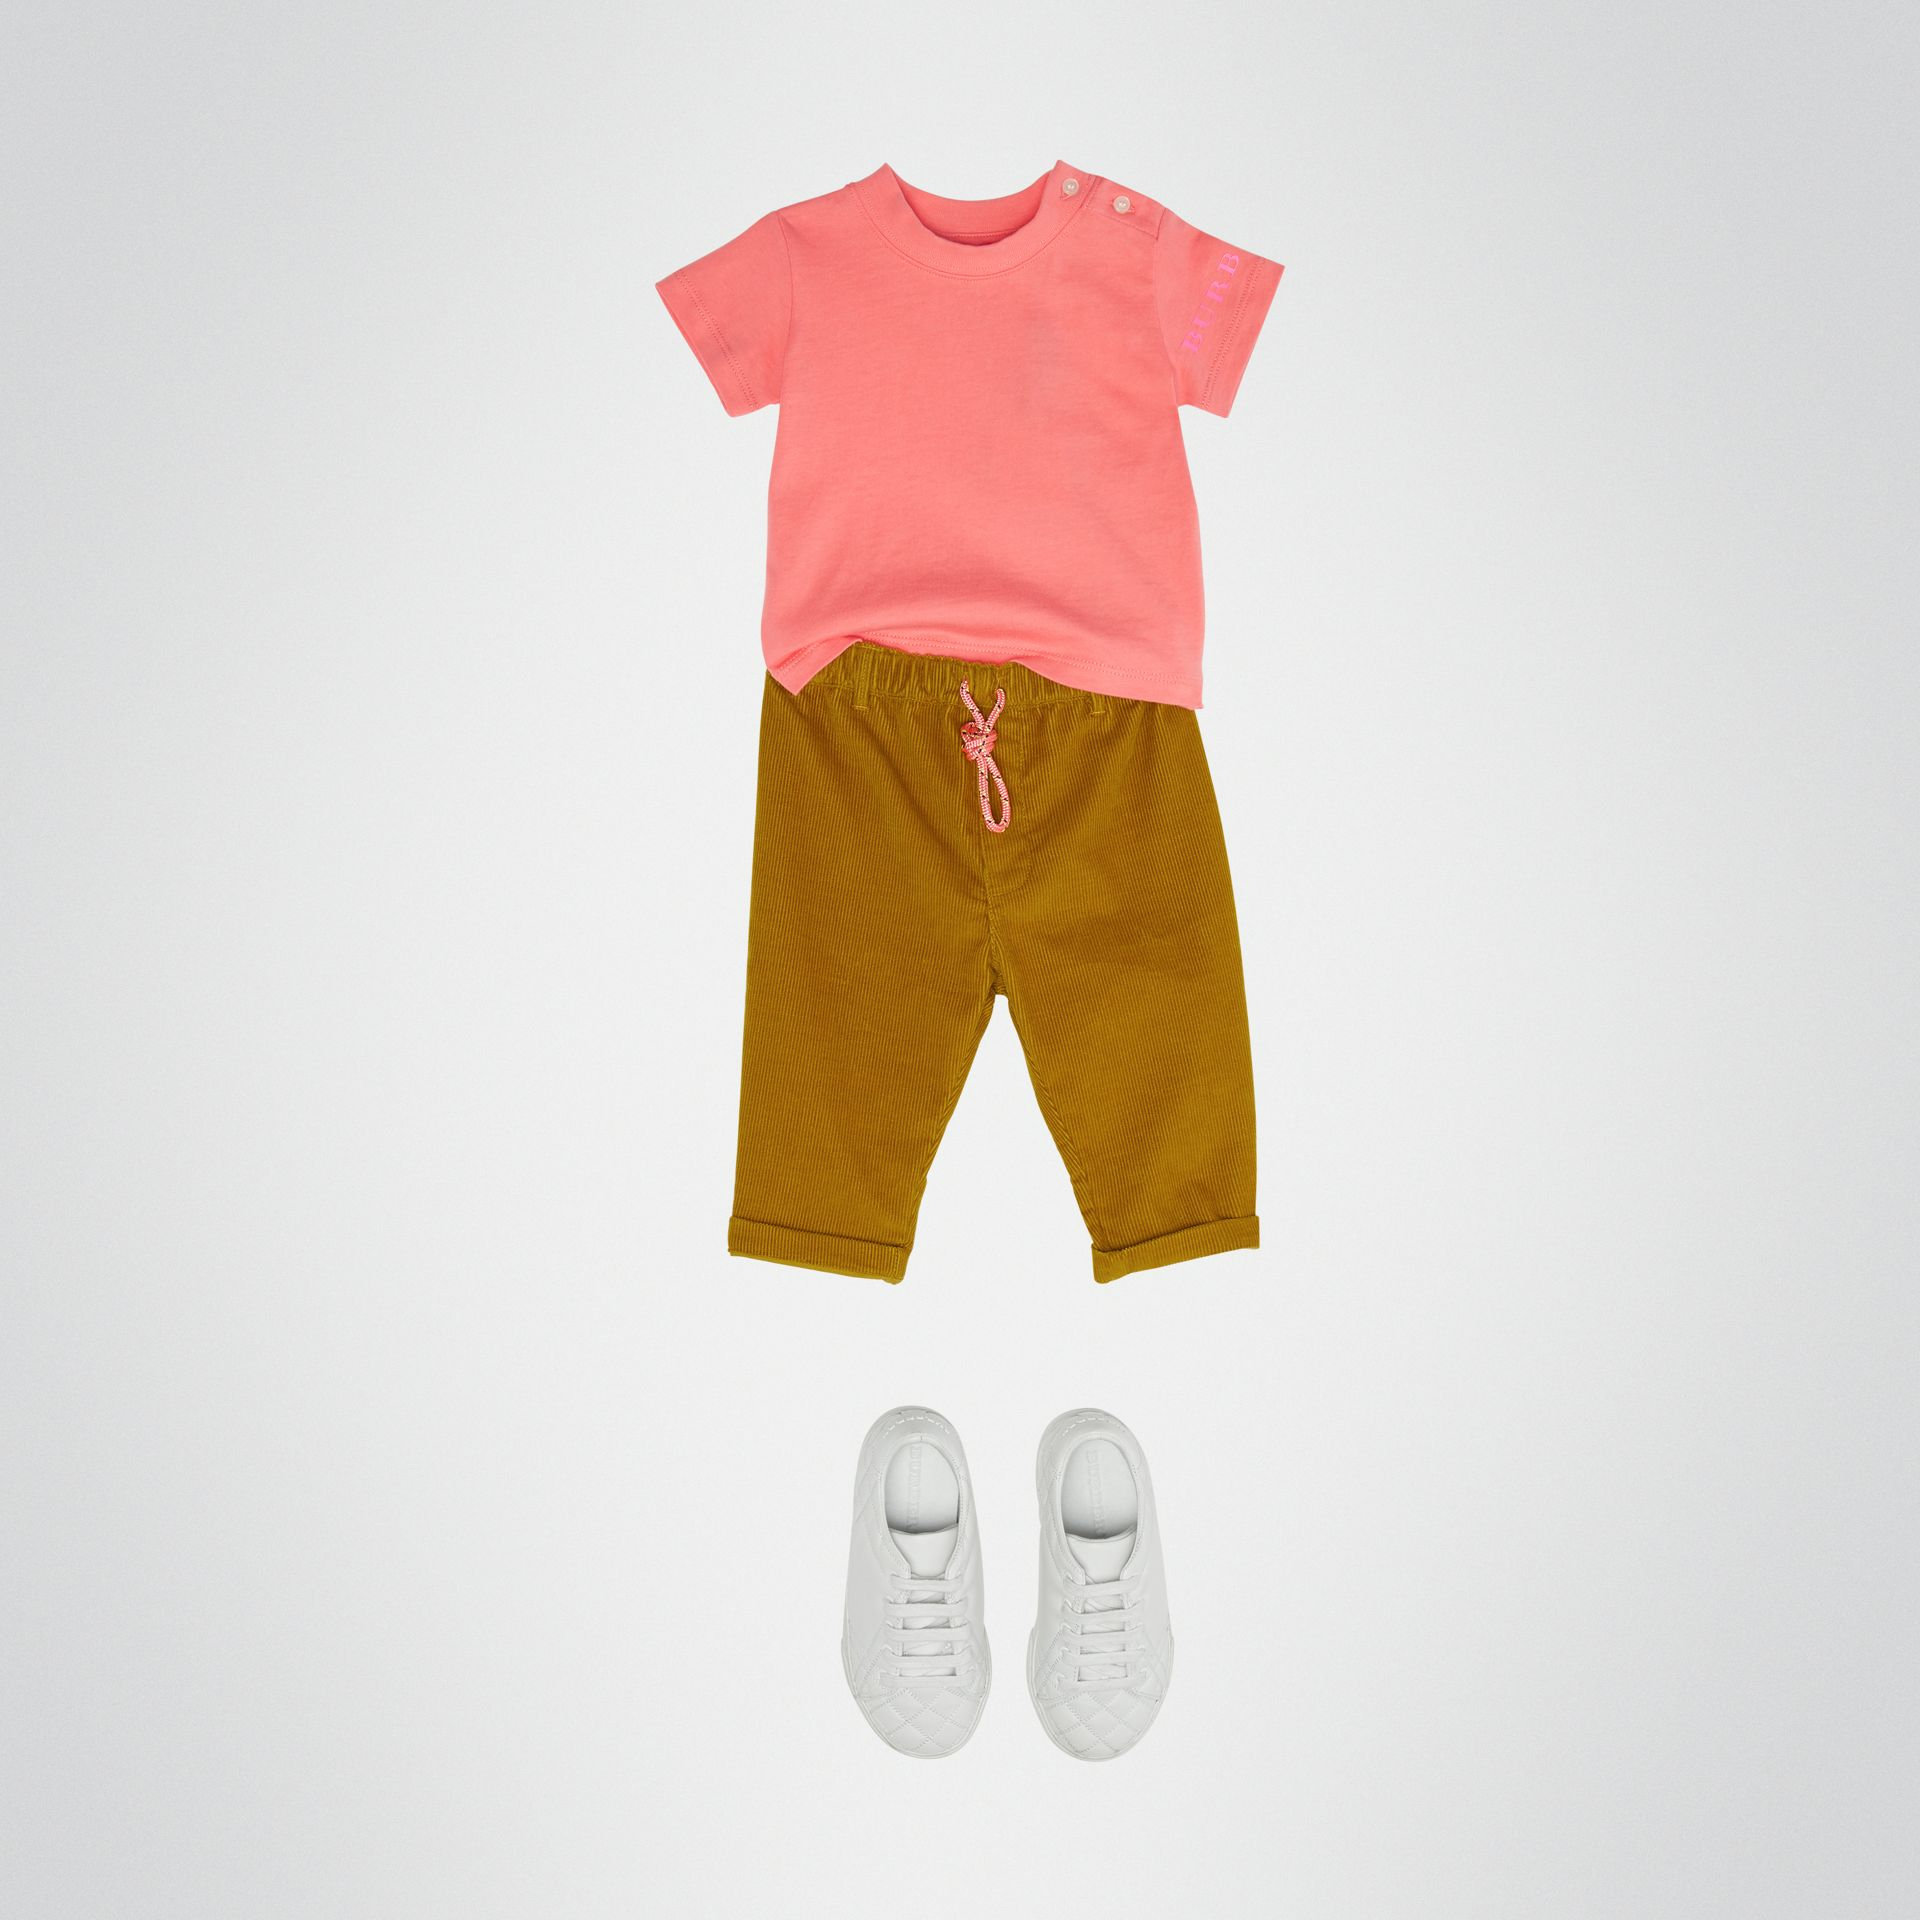 T-shirt en coton avec logo imprimé (Rose Vif) - Enfant | Burberry - photo de la galerie 2